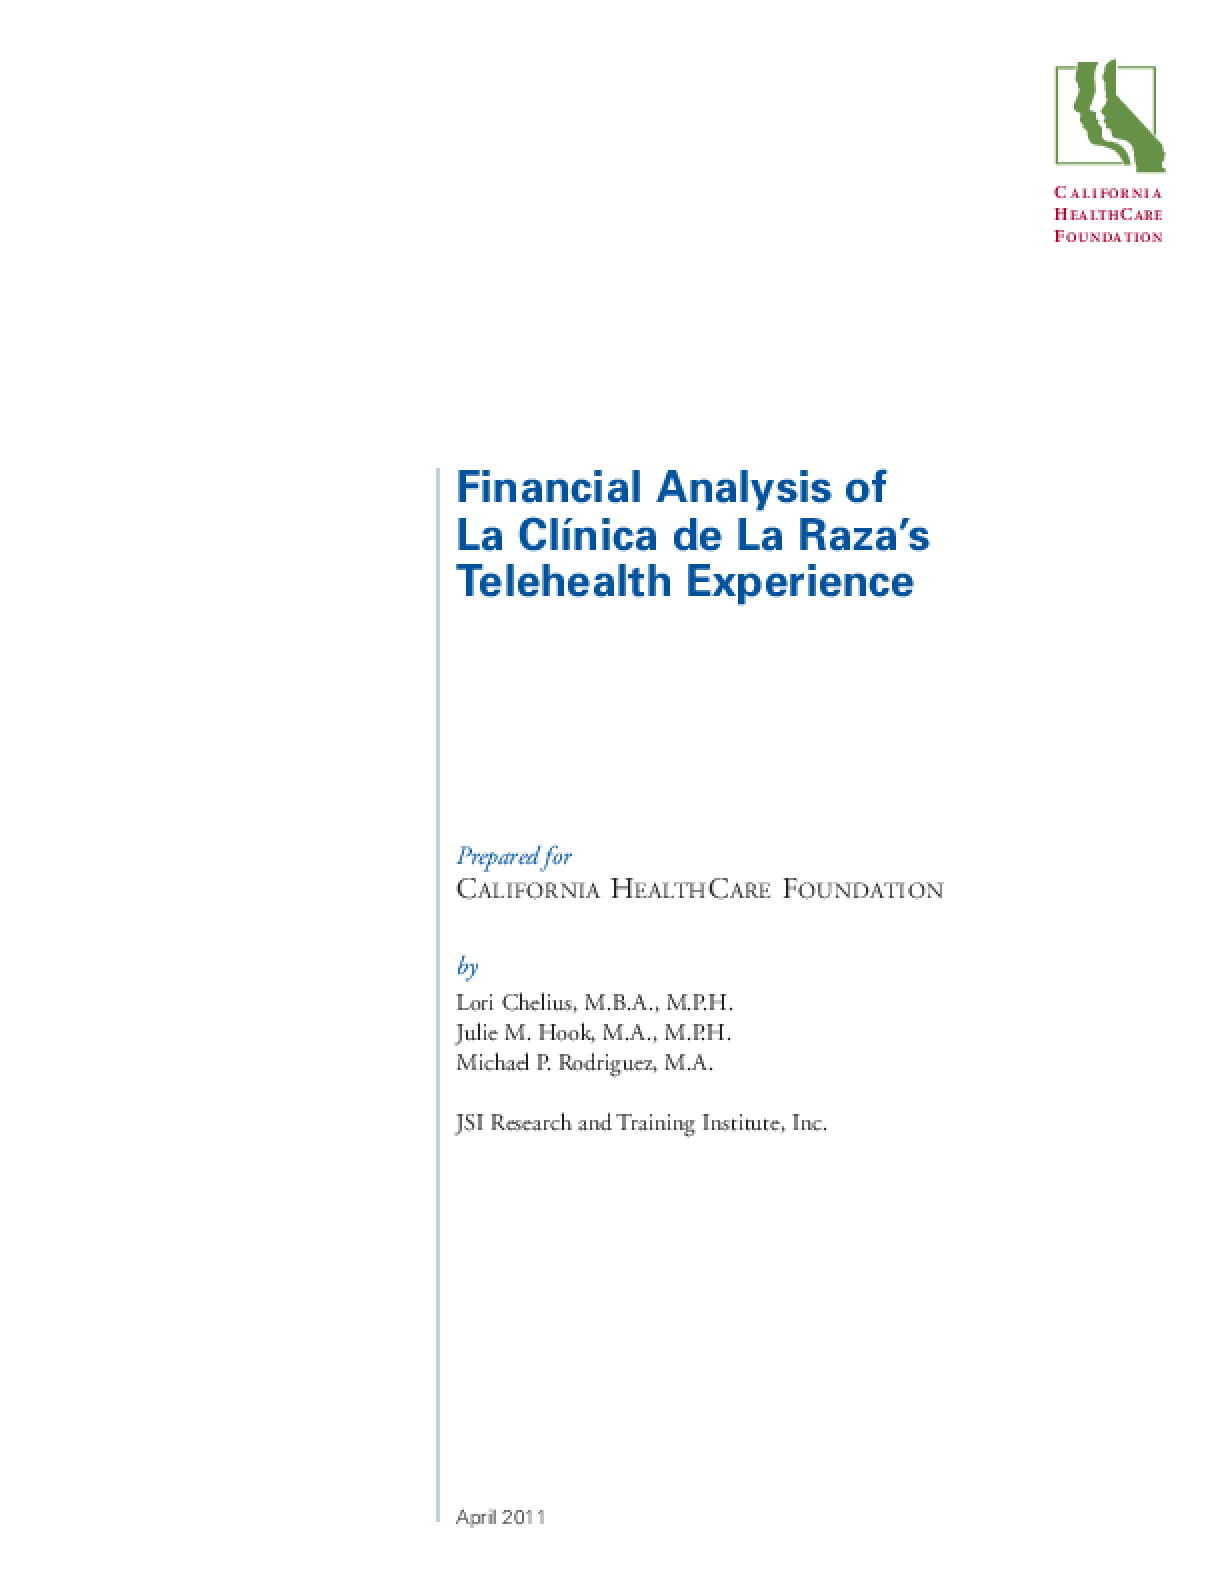 Financial Analysis of La Clinica de la Raza's Telehealth Experience